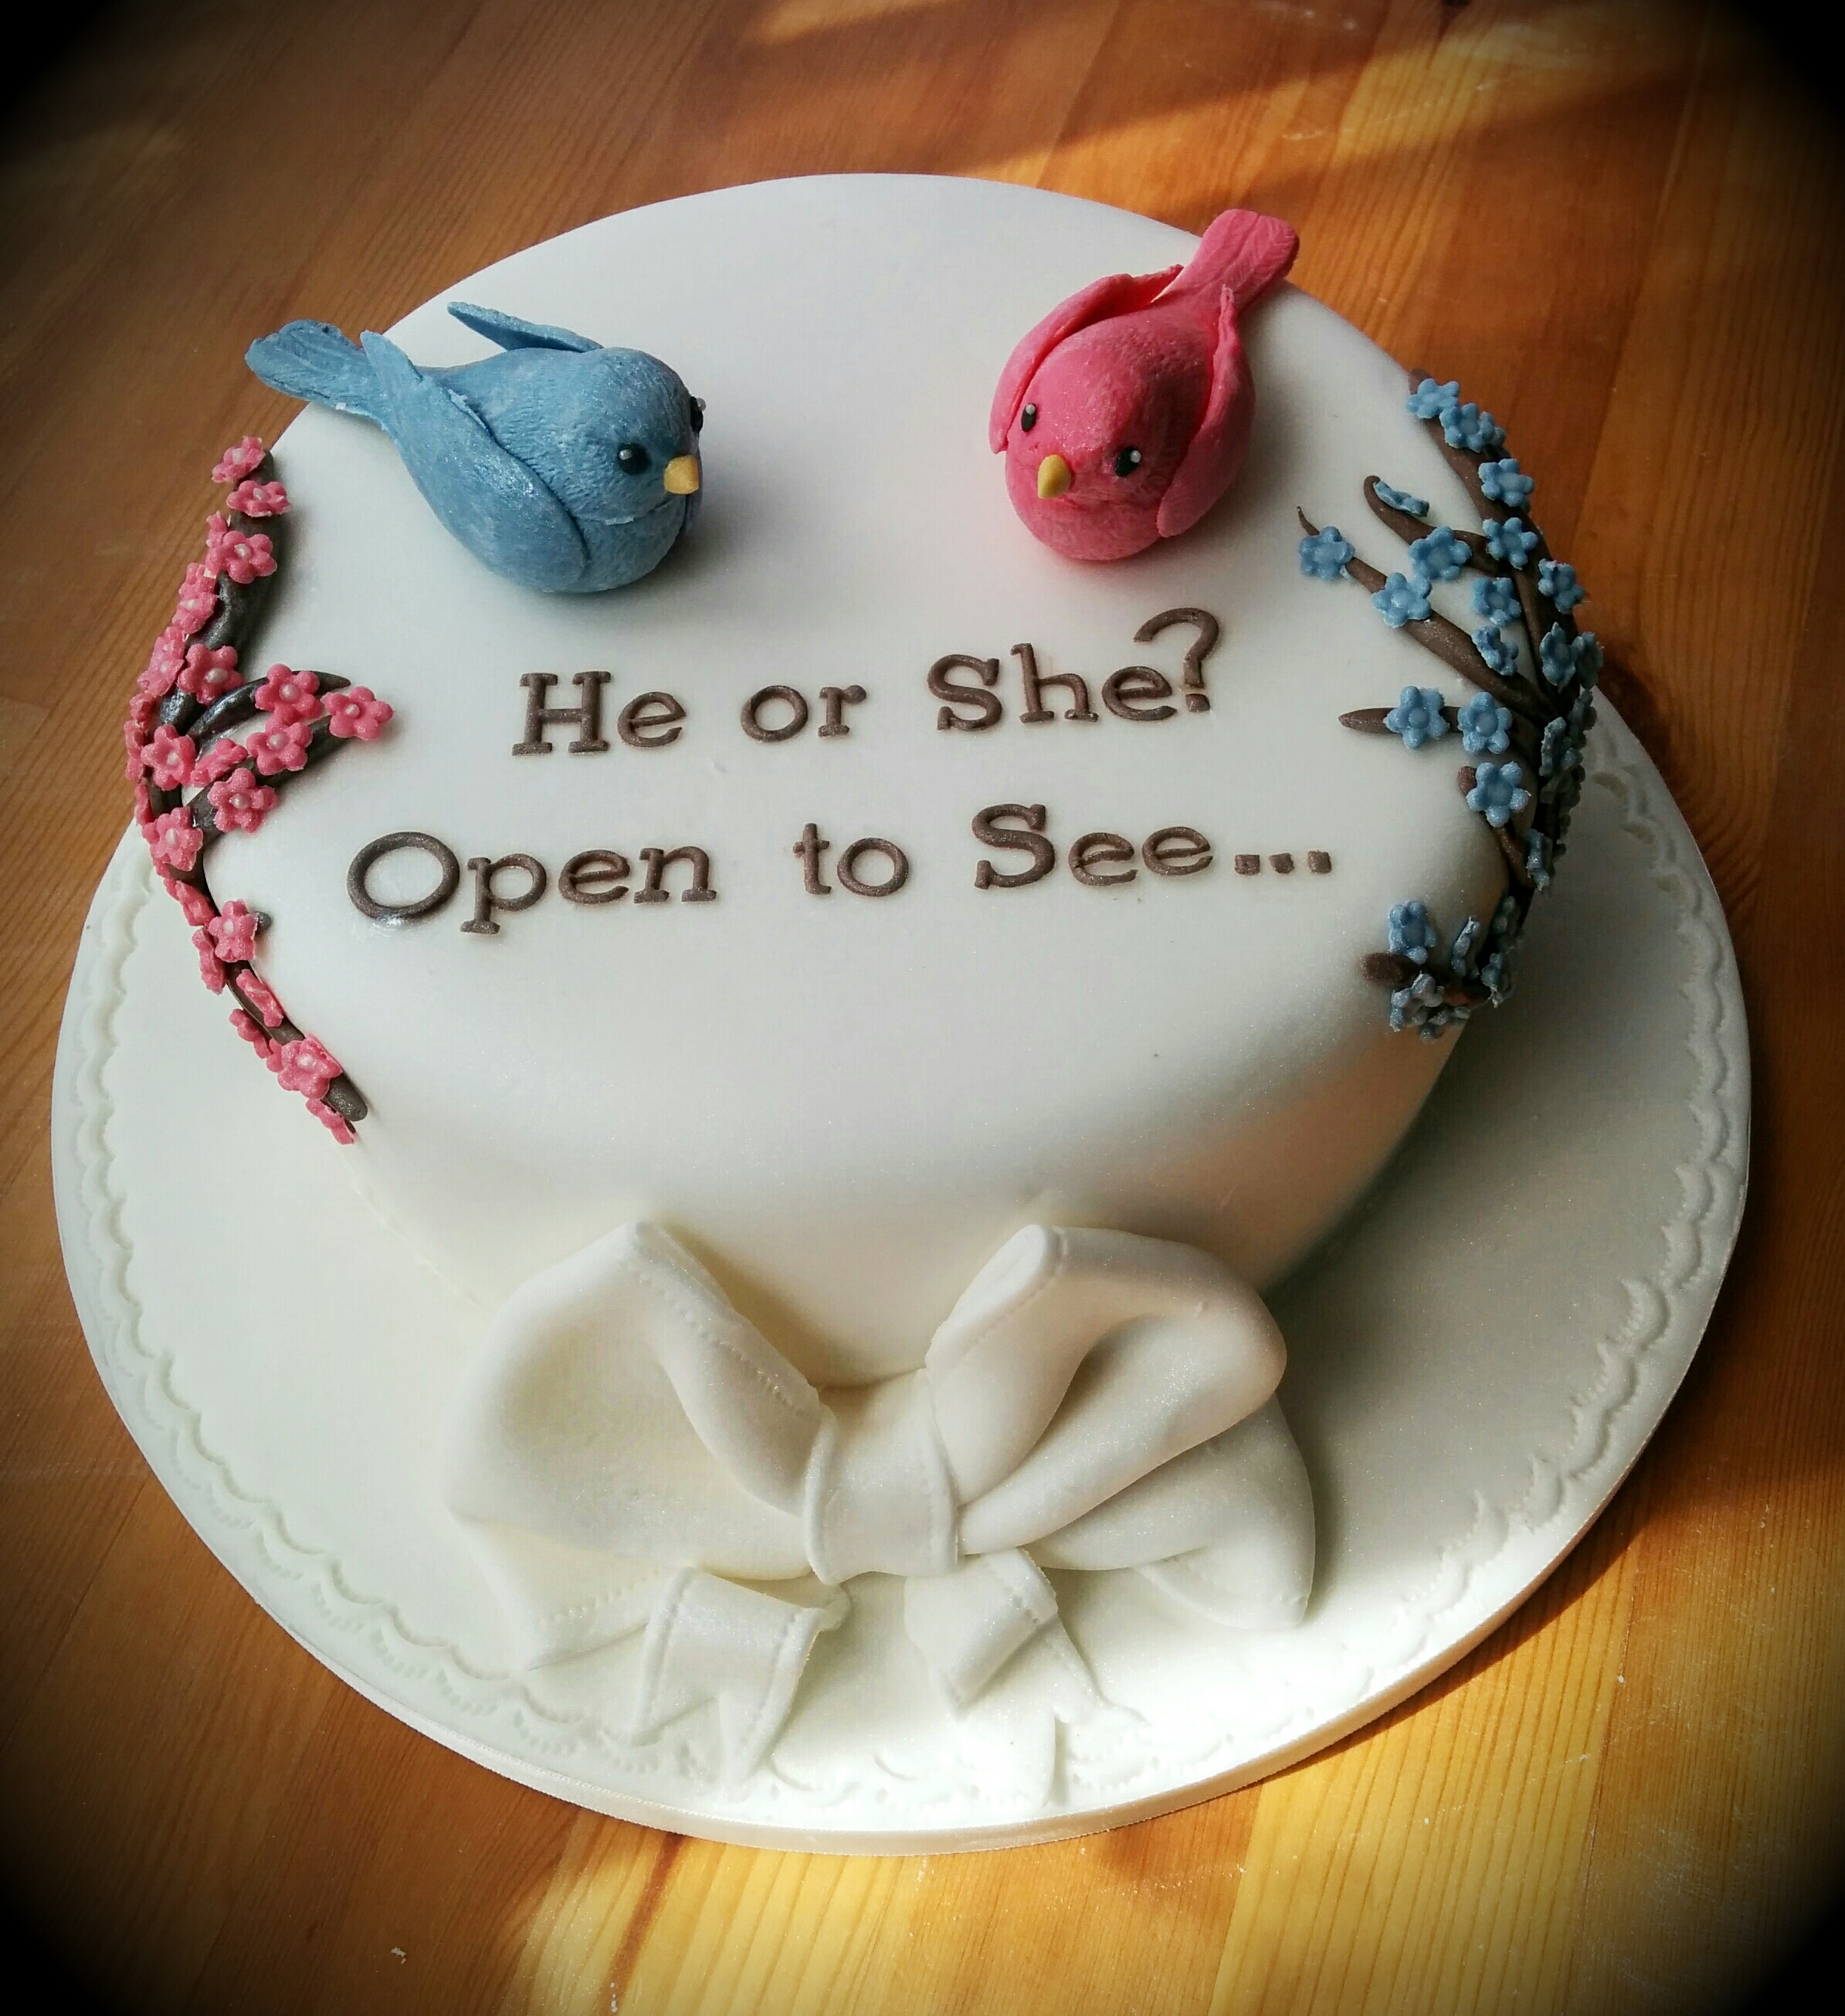 What's the deal with gender reveal cakes?